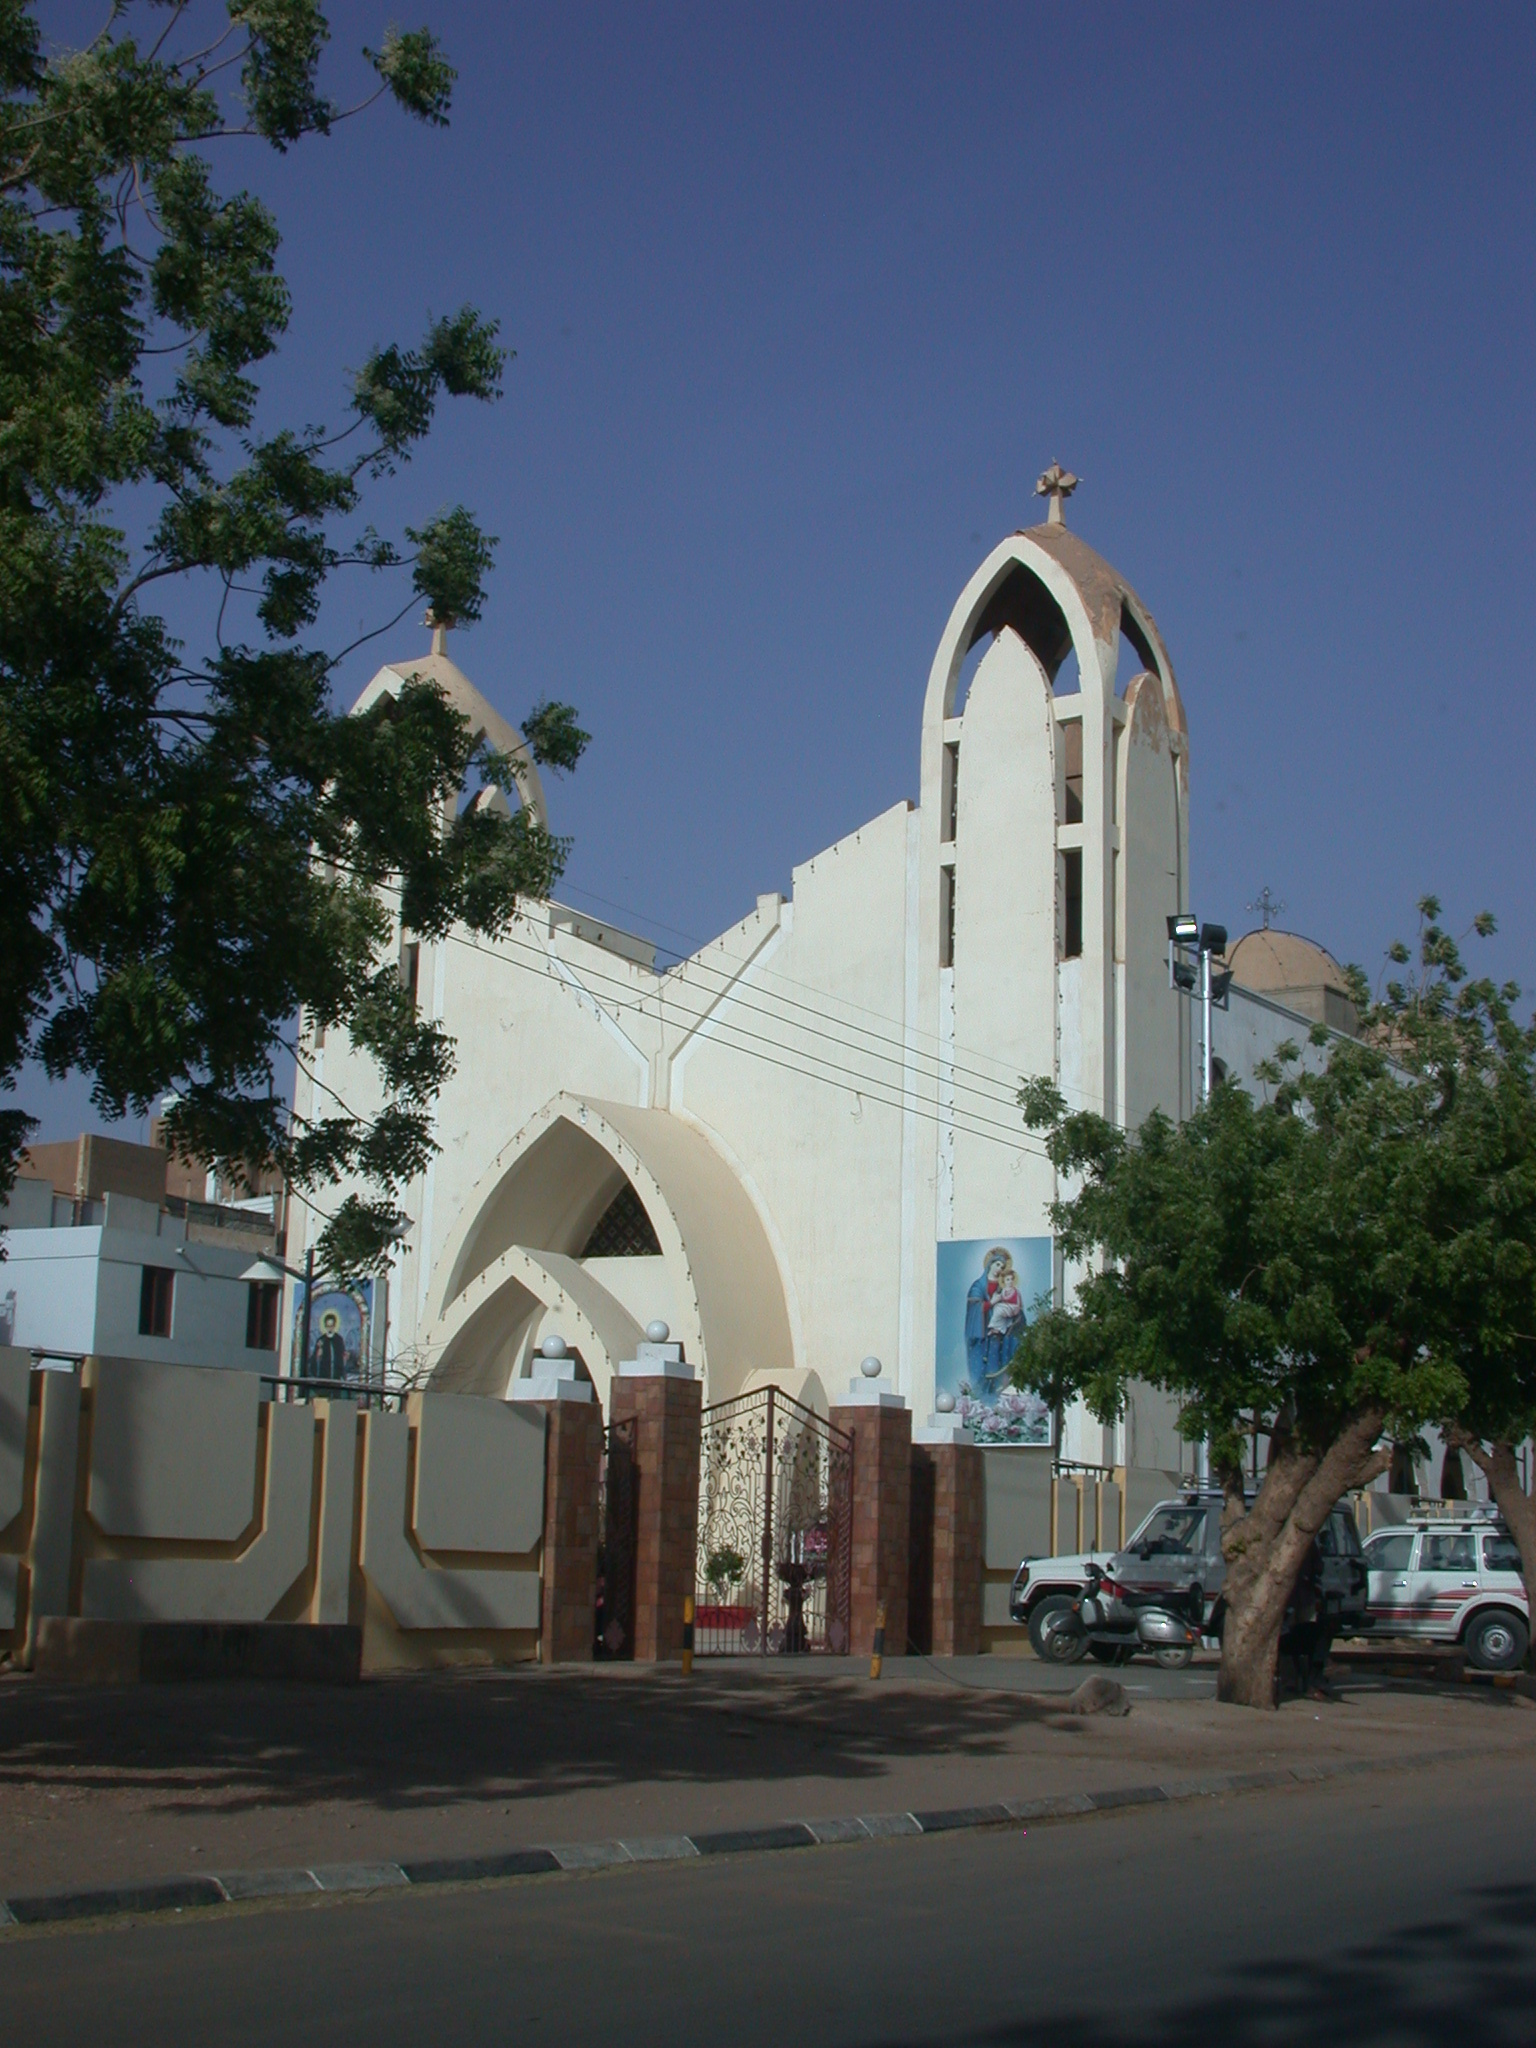 Paintings on Coptic Church, Khartoum, Sudan